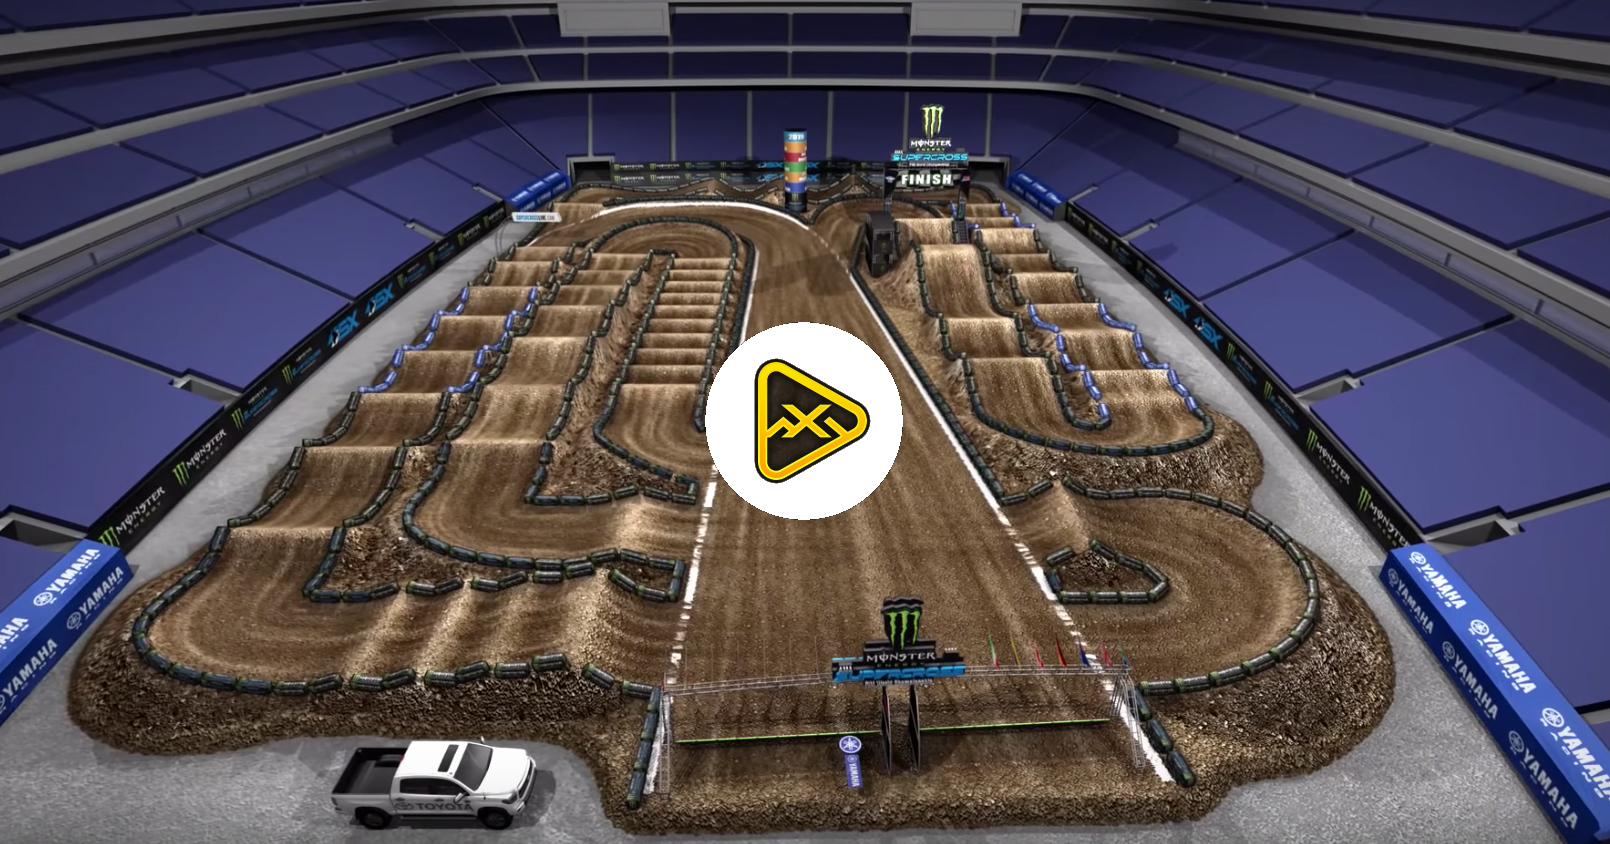 2019 Minneapolis SX Animated Track Map